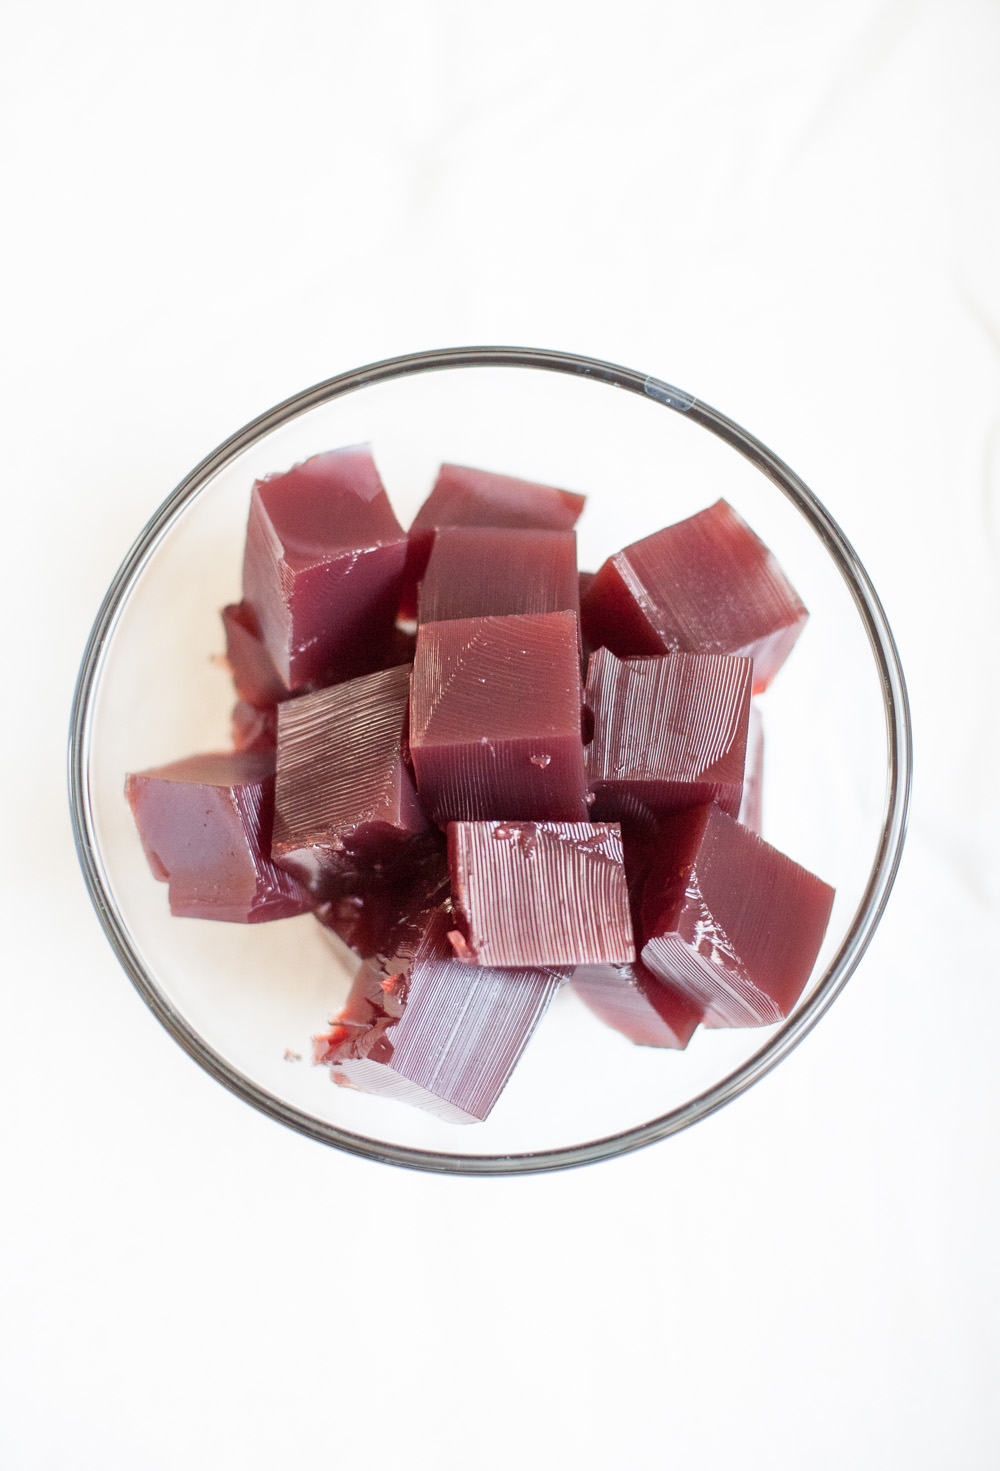 superfood jello